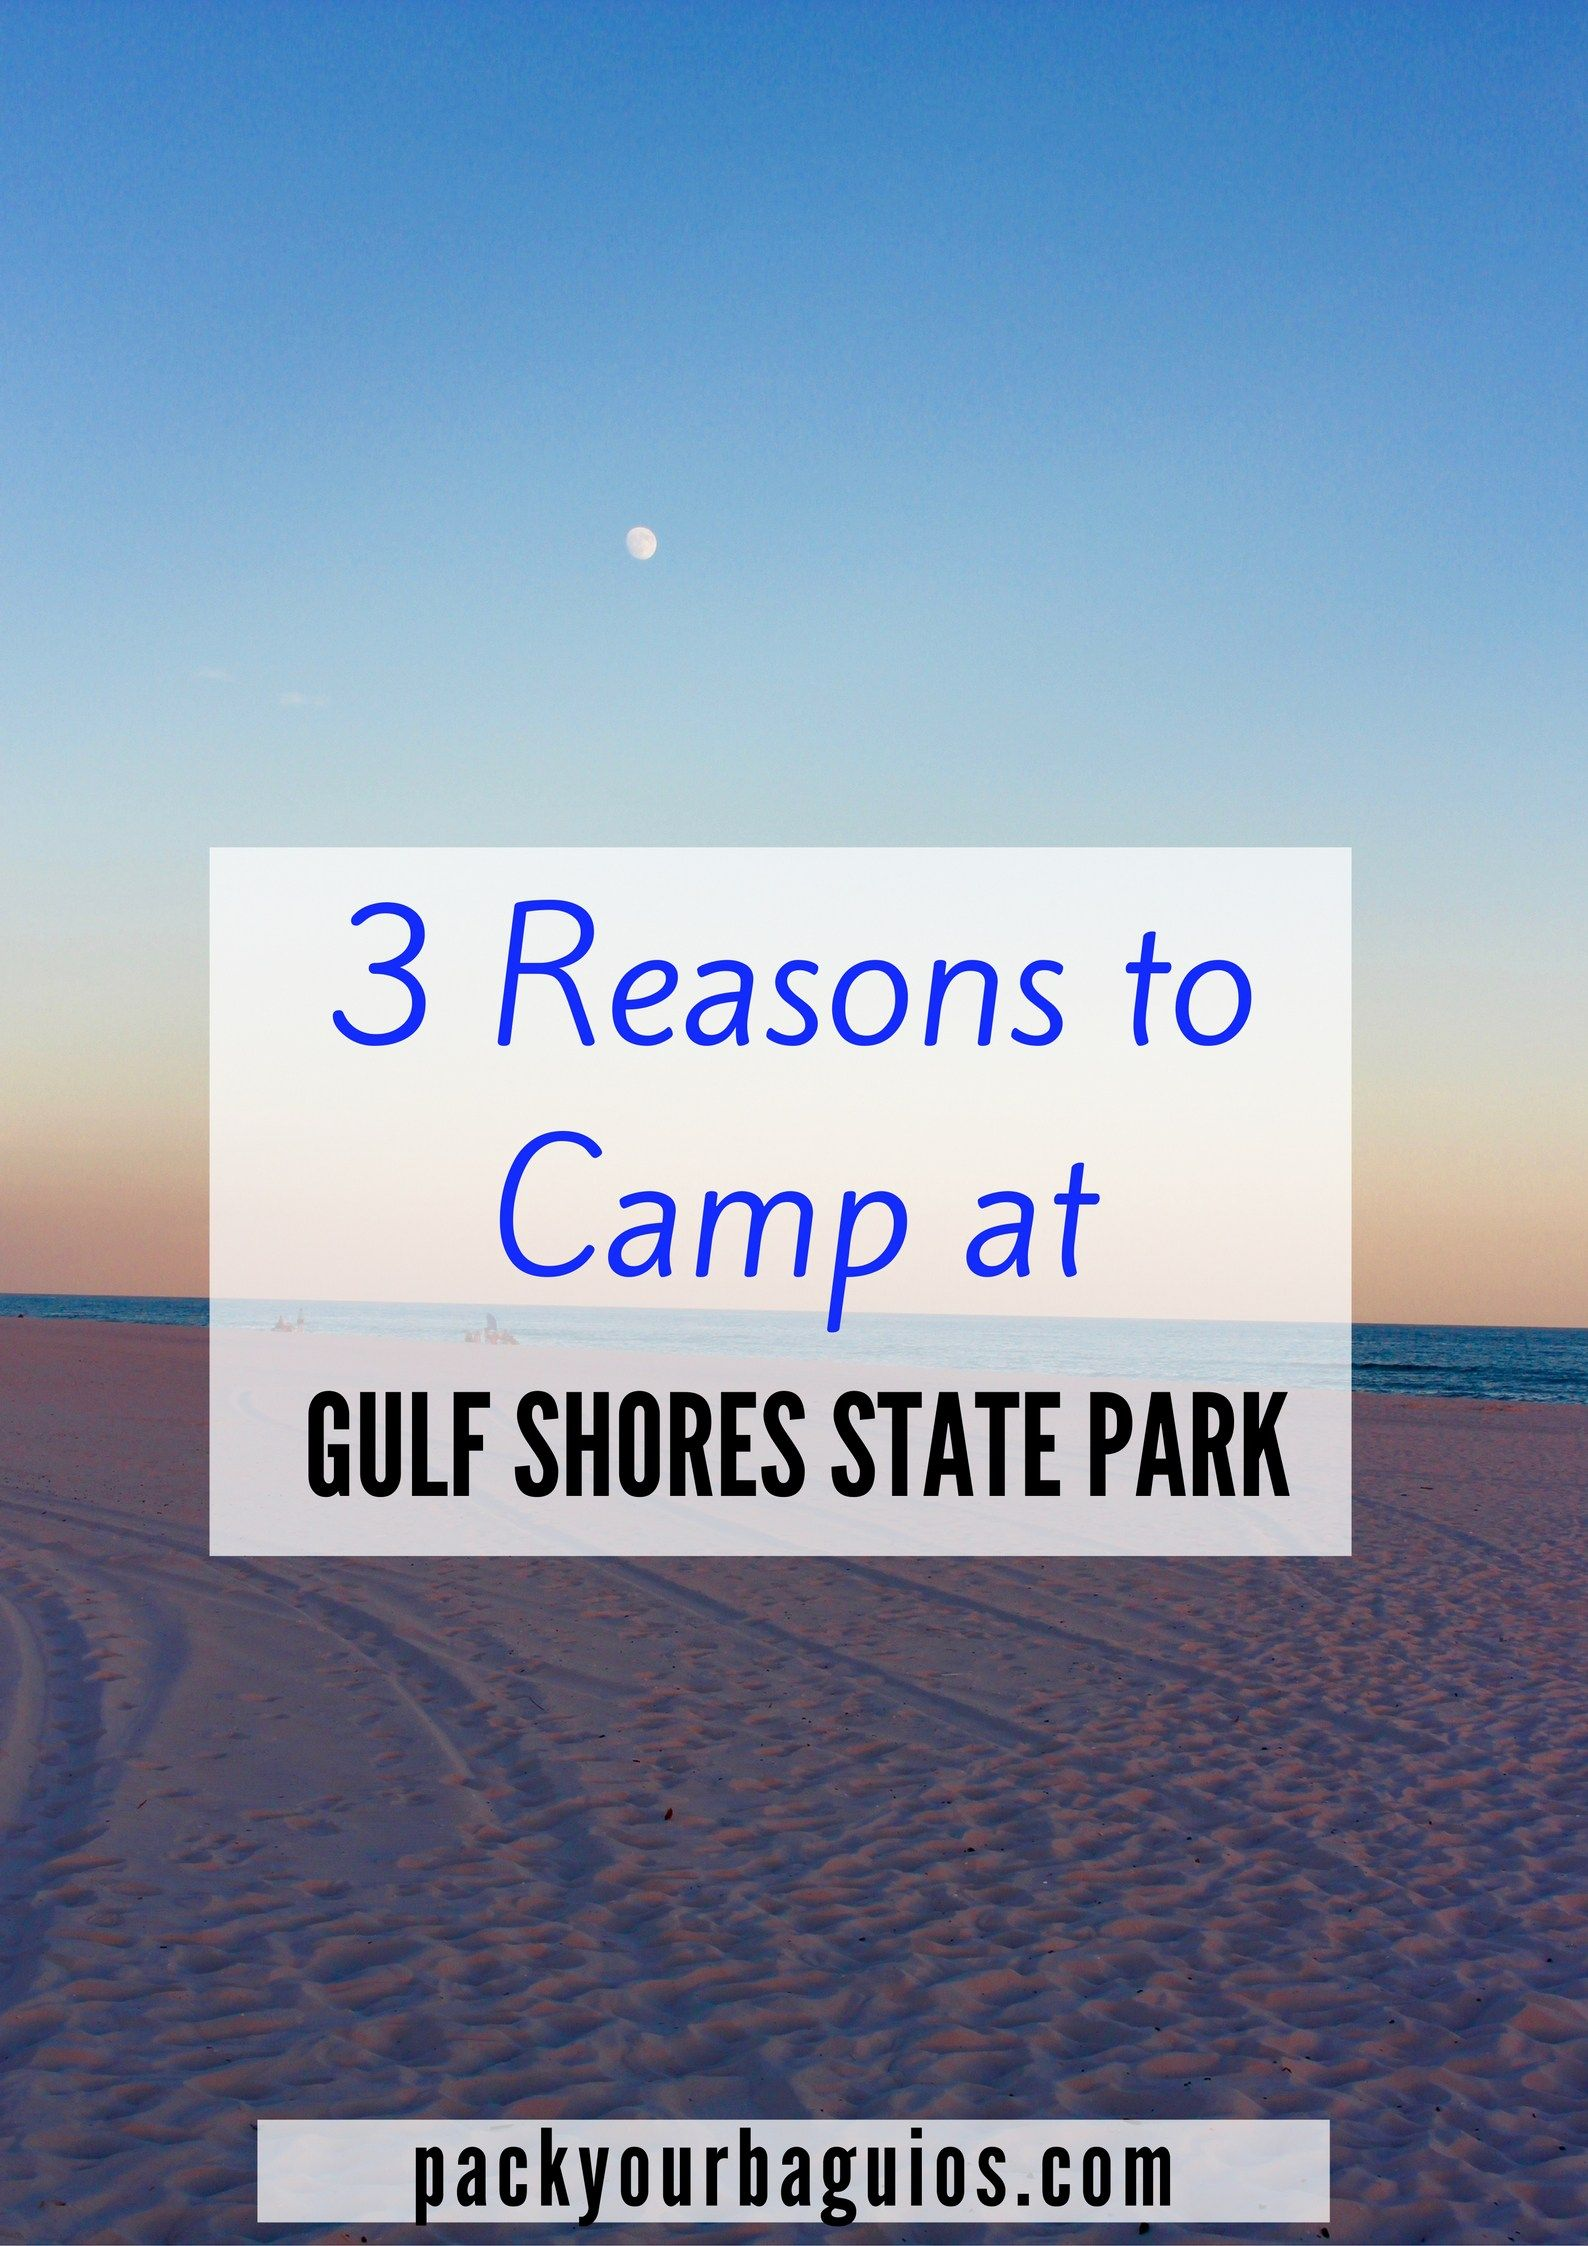 3 Reasons to Camp at Gulf Shores State Park   Camping   Gulf